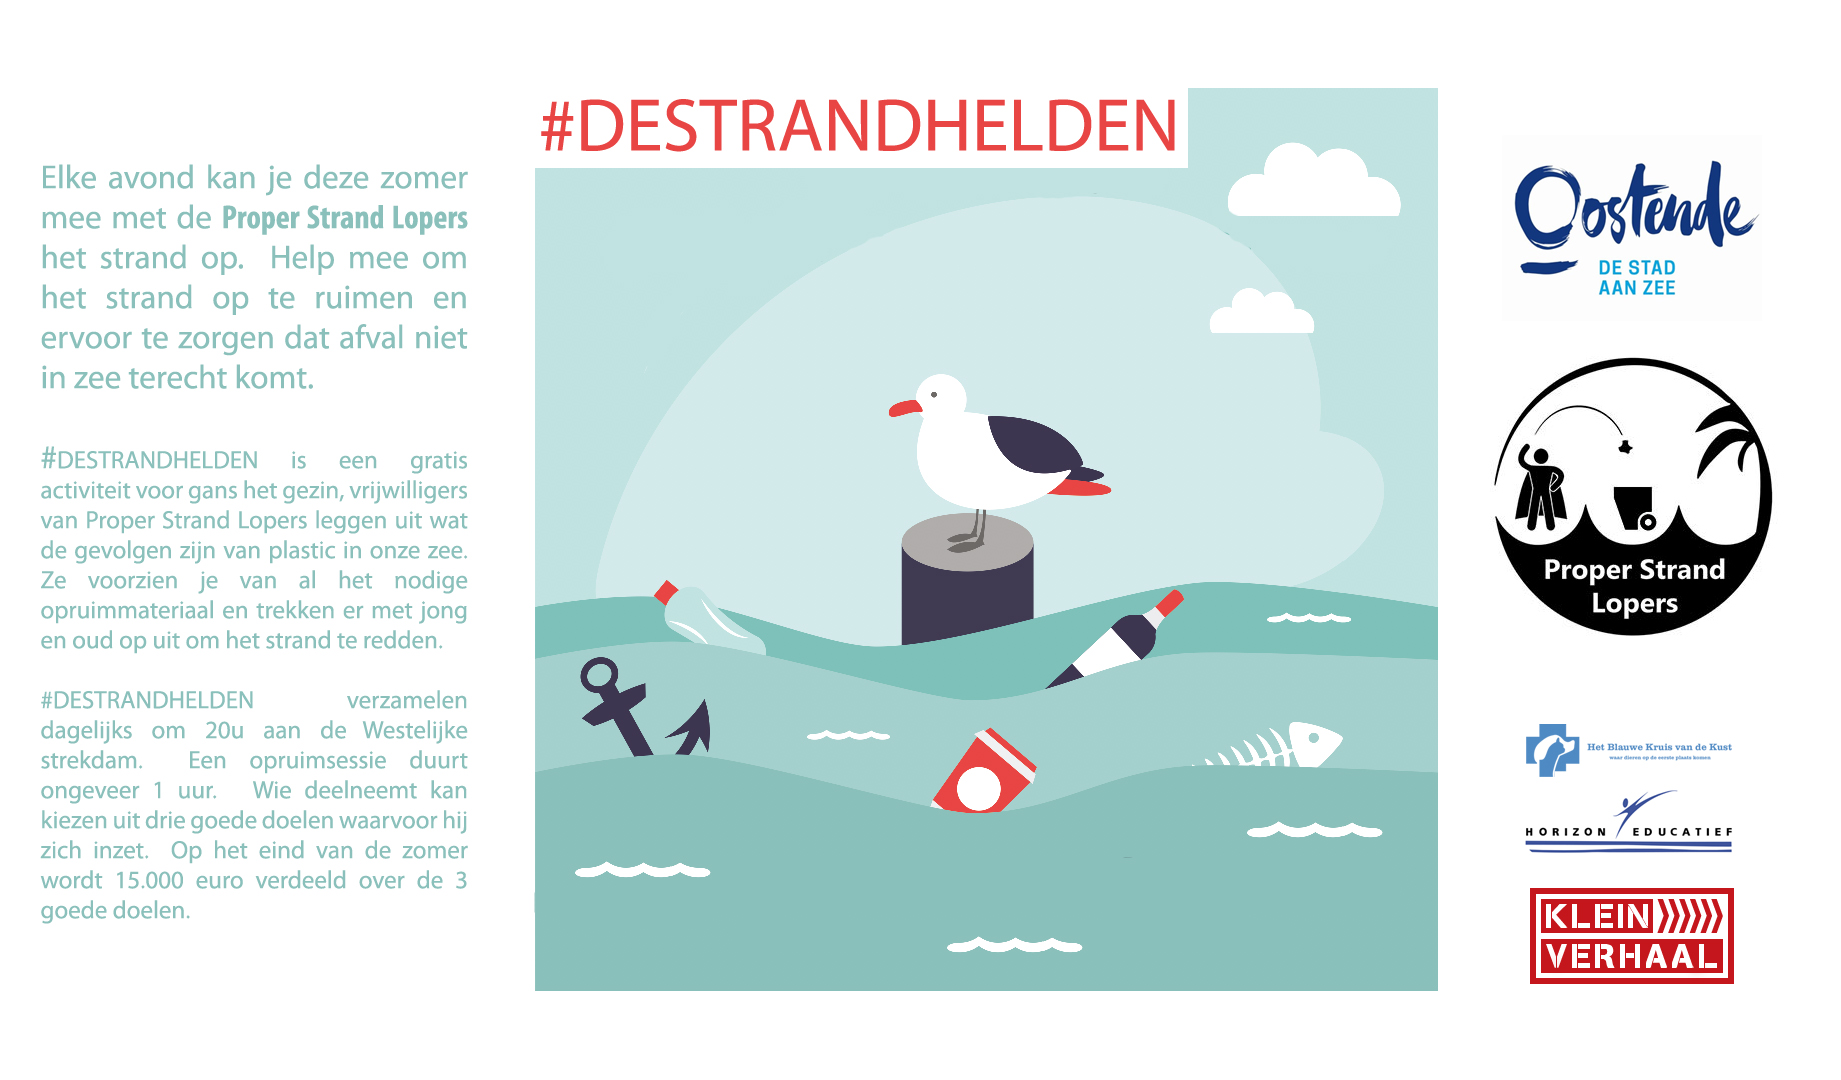 #DESTRANDHELDEN